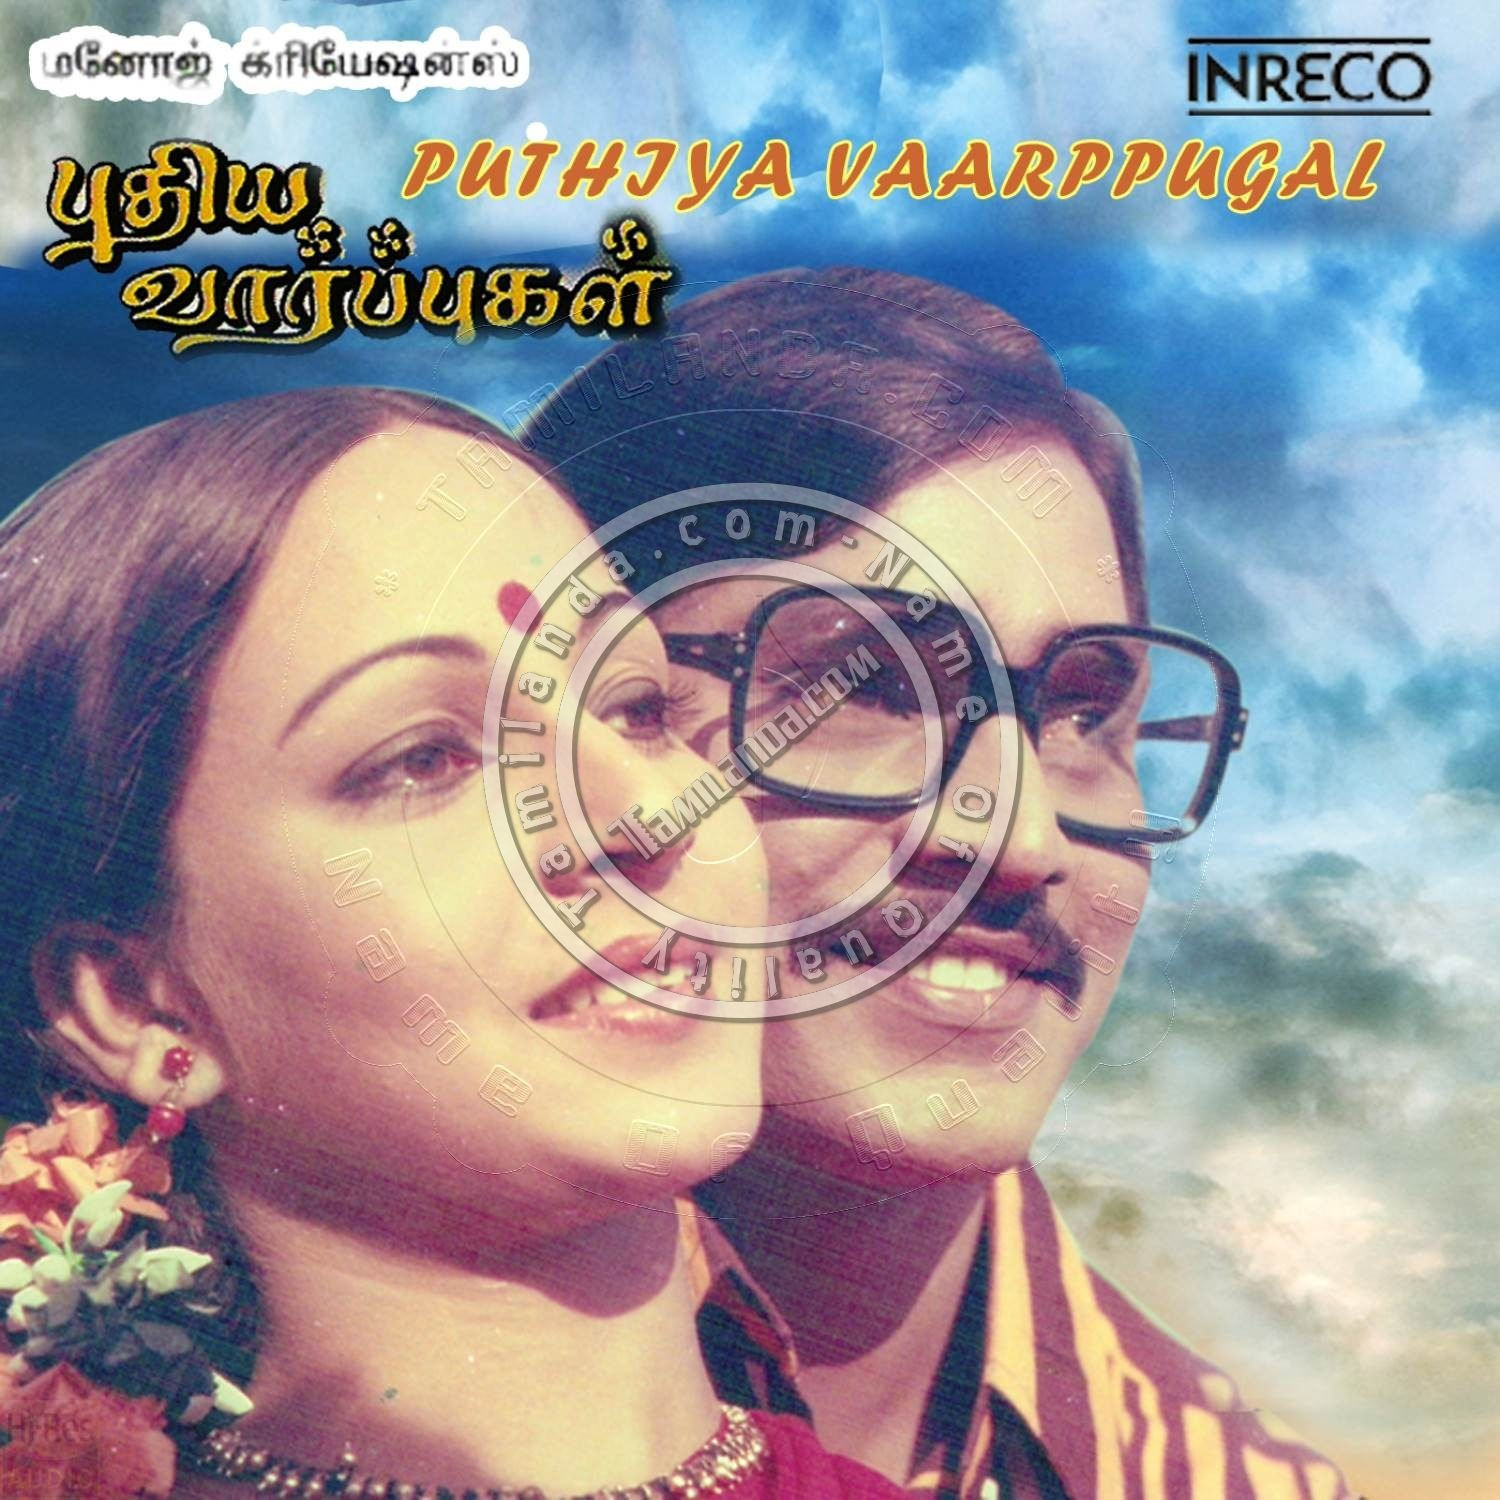 Pudhiyavaarpugal 16 BIT FLAC Songs